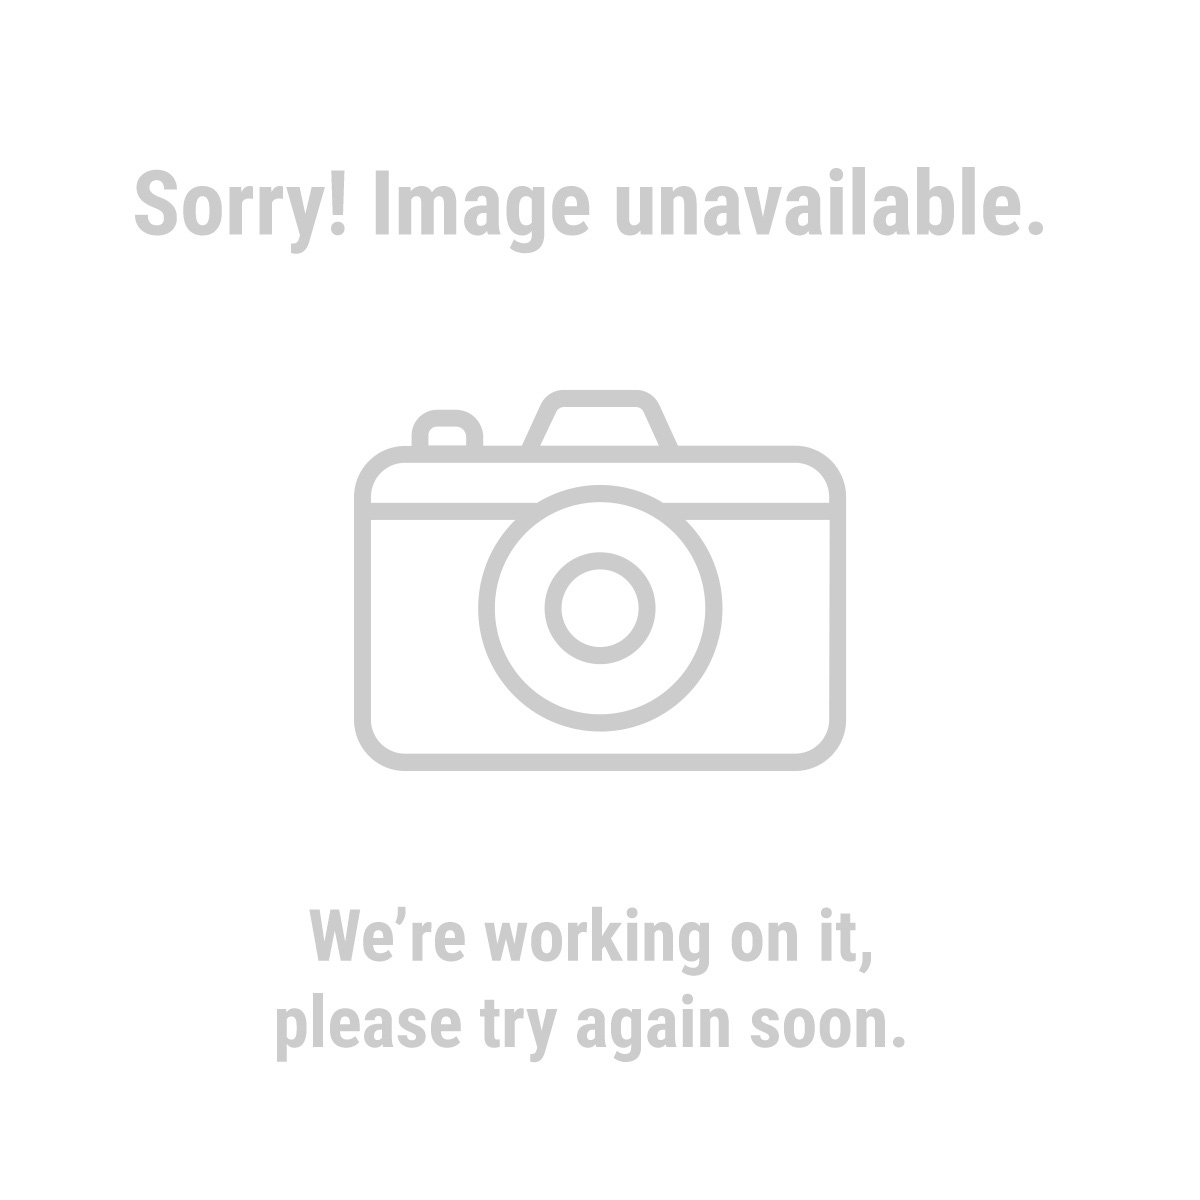 Haul-Master 66966 Multi-Use Ball Mount